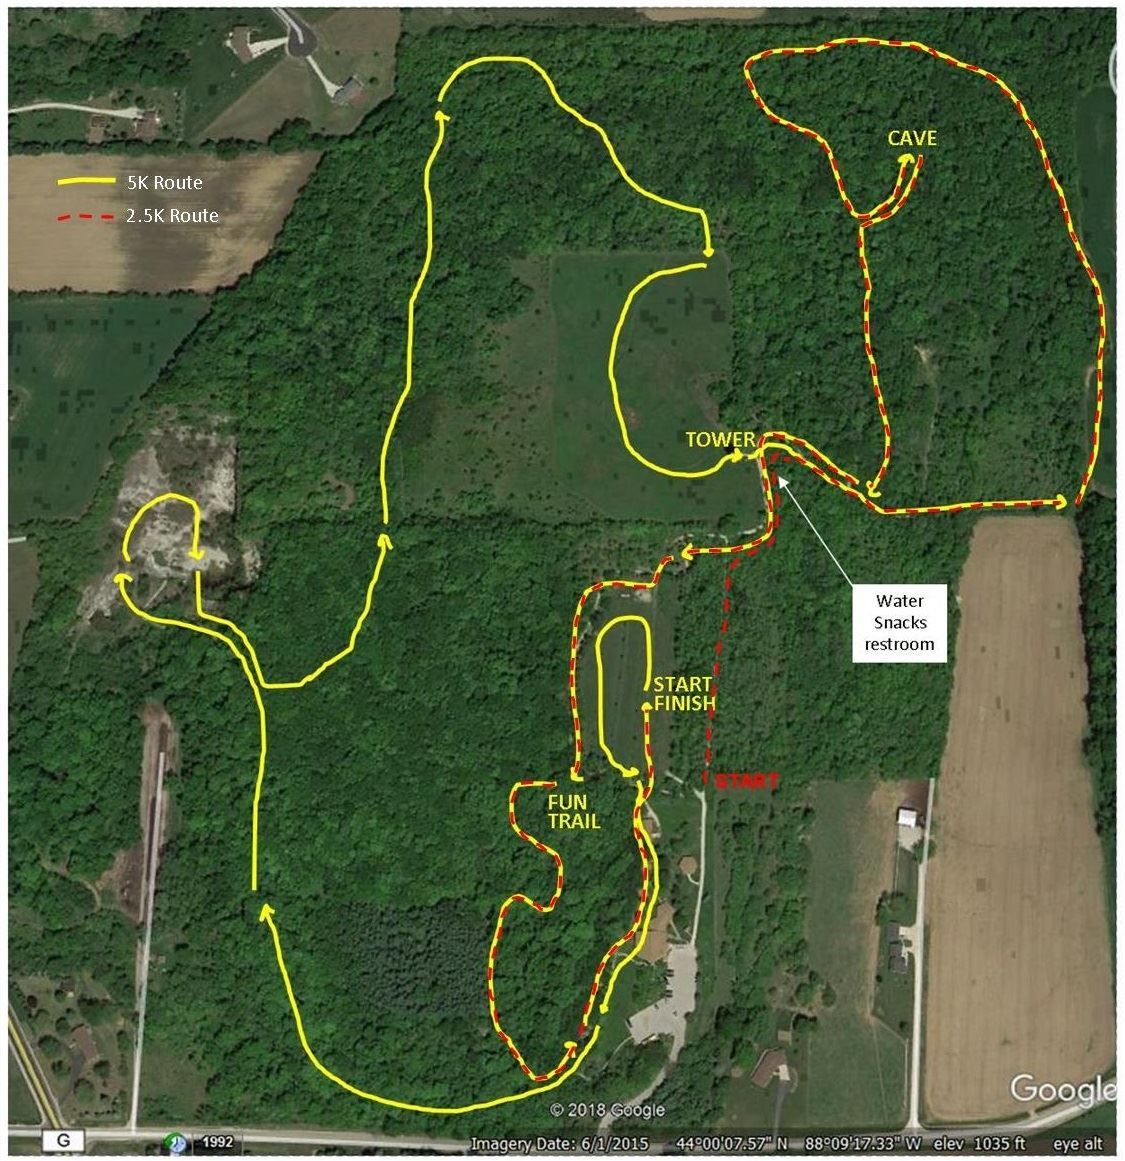 Arial photograph of Ledge View Nature Center showing the routes for the 2020 caveman run